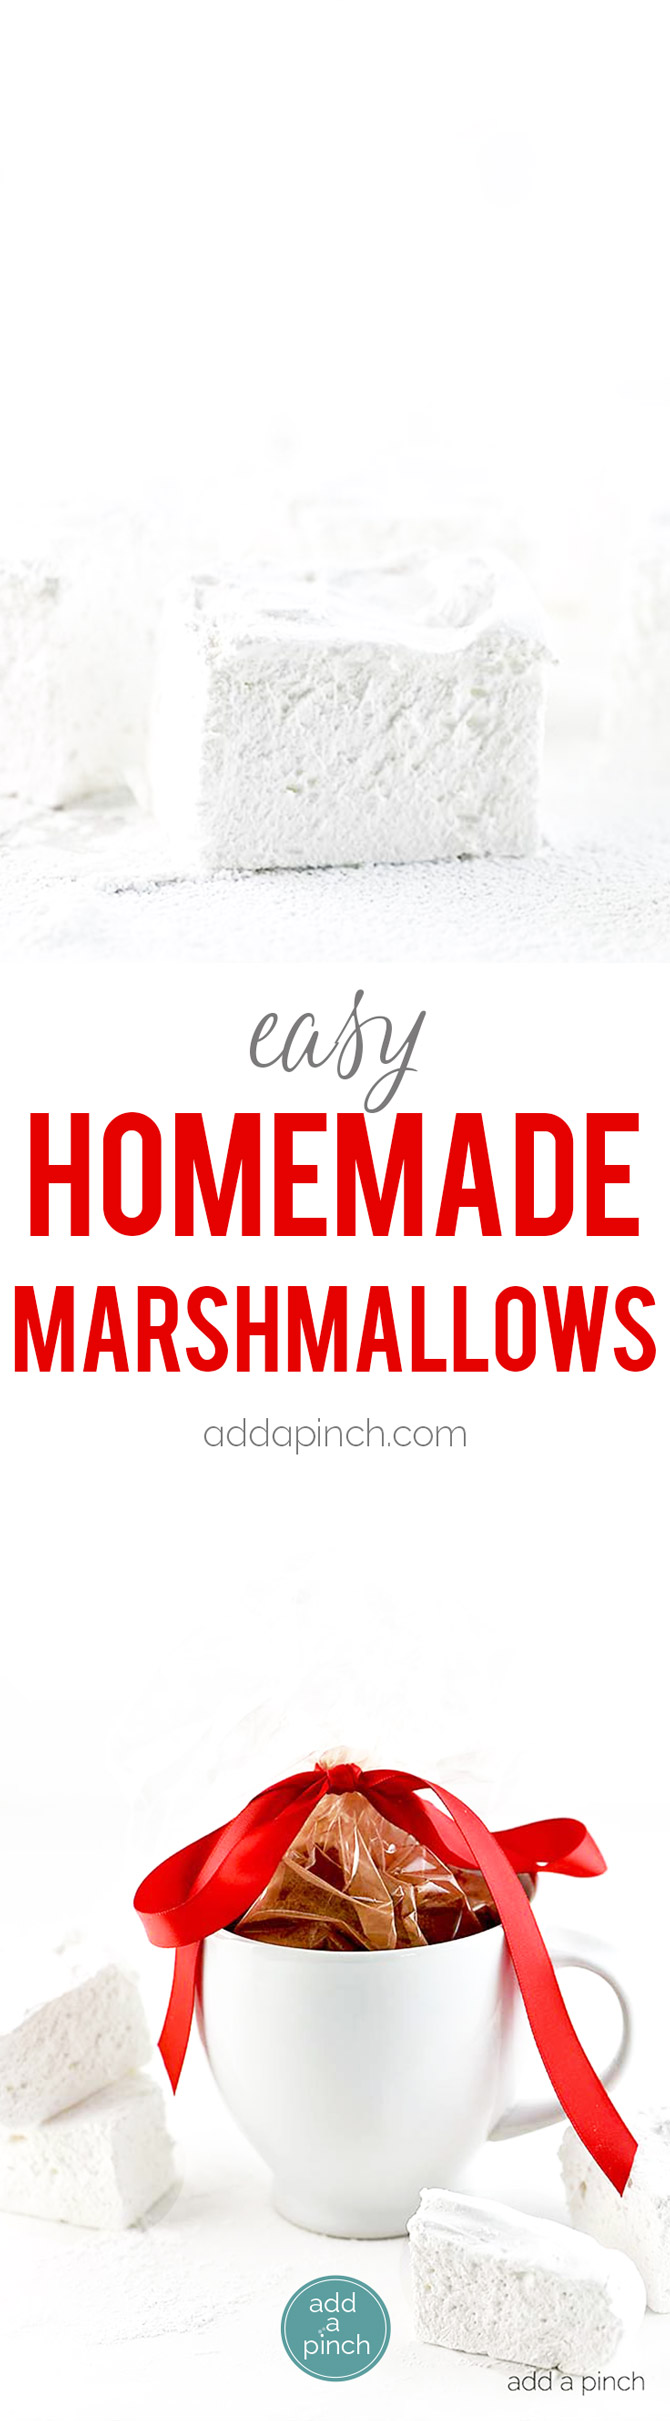 Homemade Marshmallow Recipe - This marshmallow recipe includes tips for easy homemade marshmallows that are fluffy and delicious every time. // addapinch.com